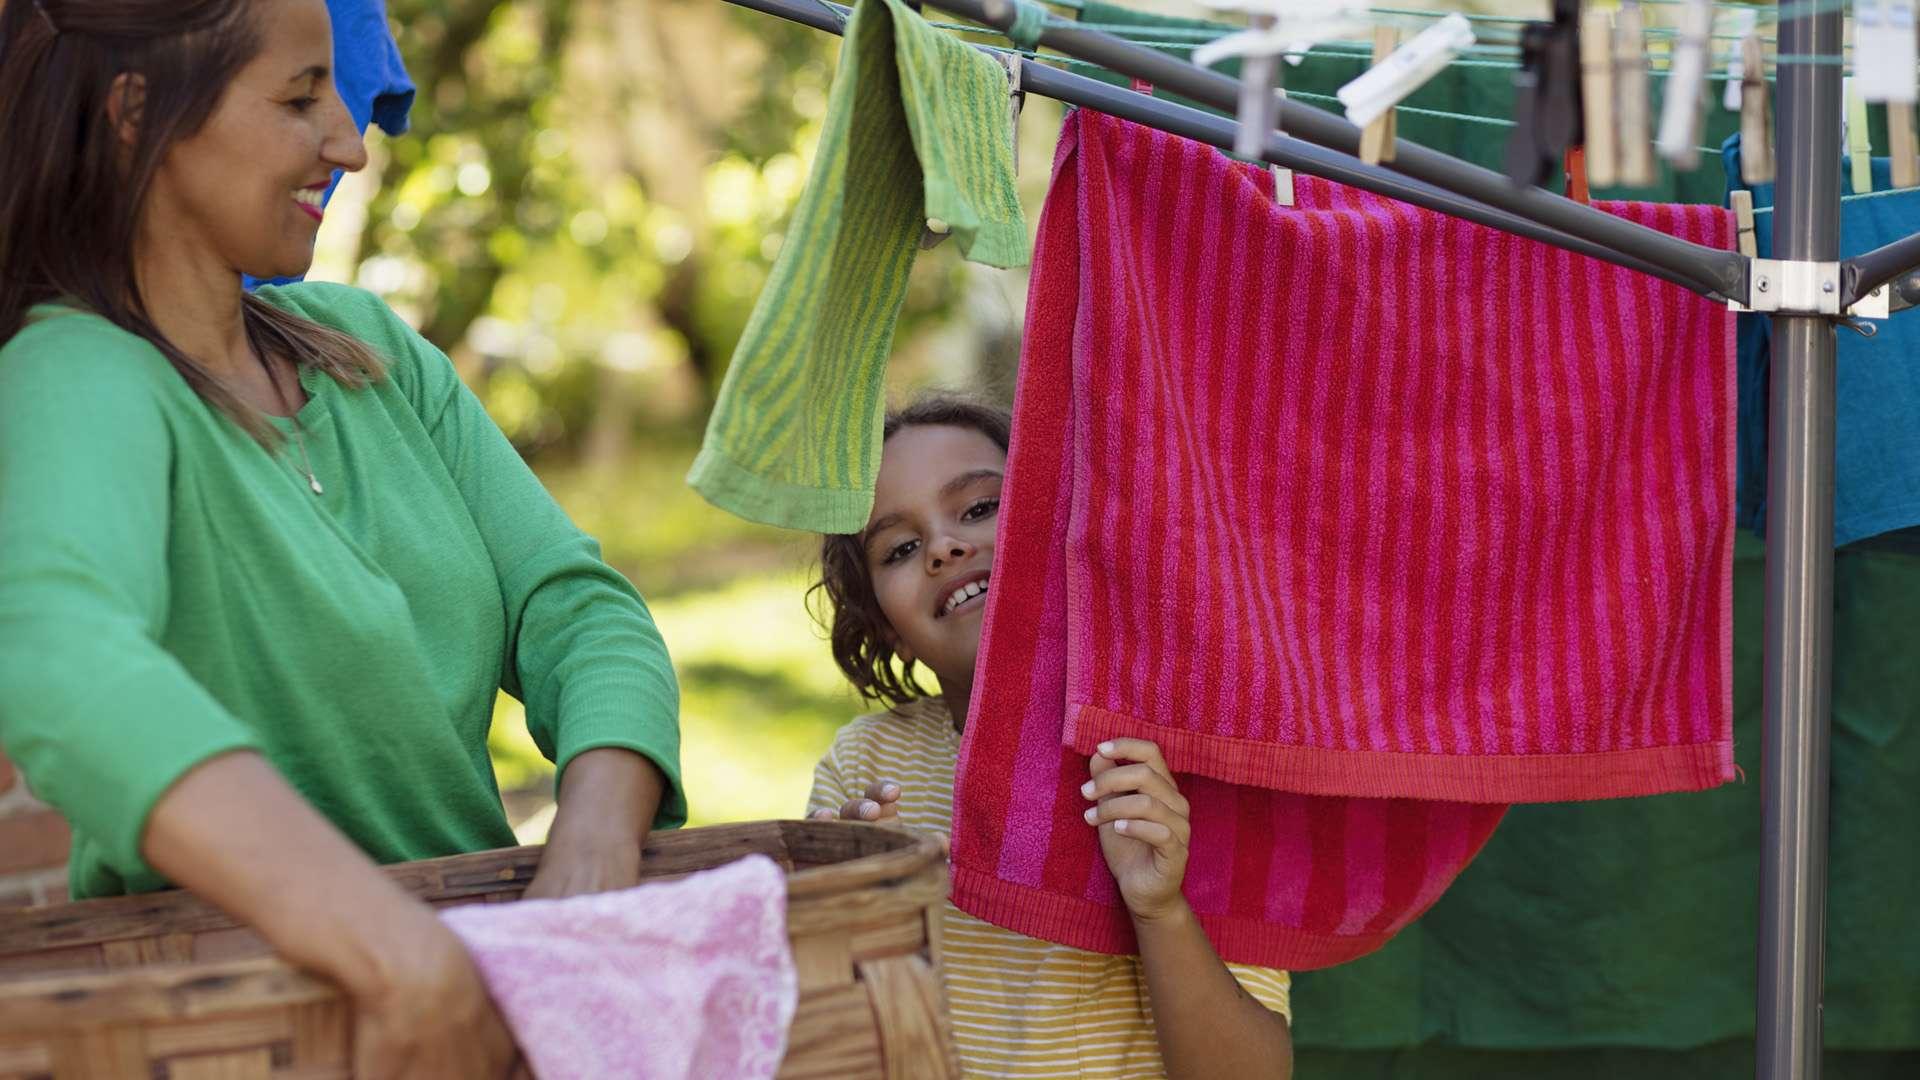 Kid and mother with laundry outside